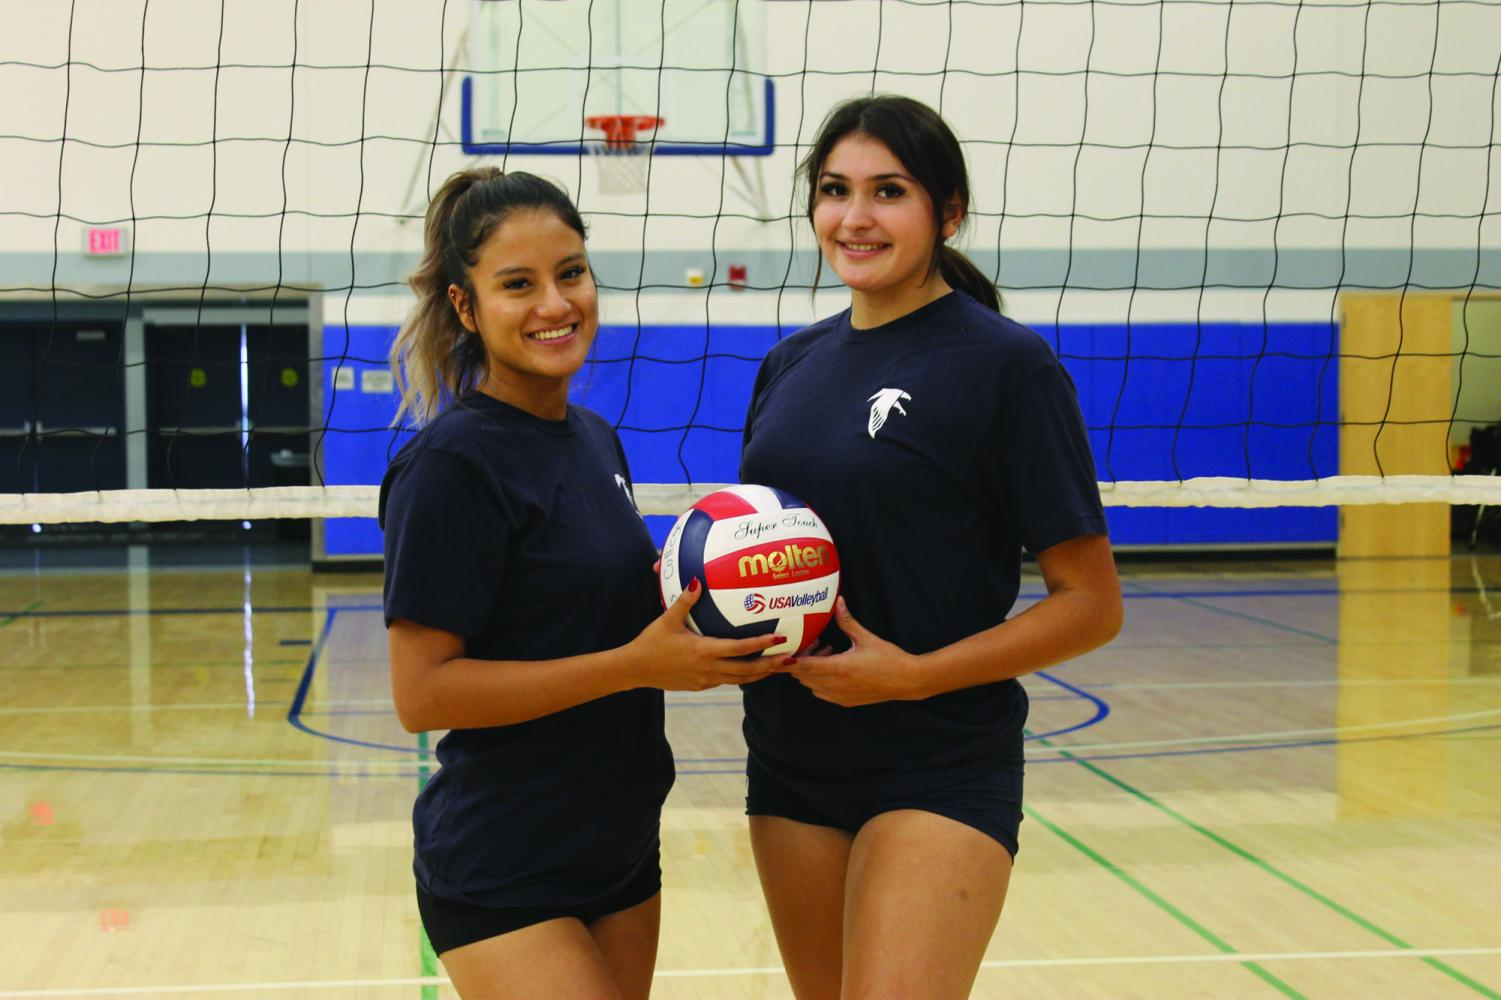 Mirka Granoble (left) and Alexia Torress (right) have been playing together since high school and now play for the Cerritos College Womens Volleyball team.